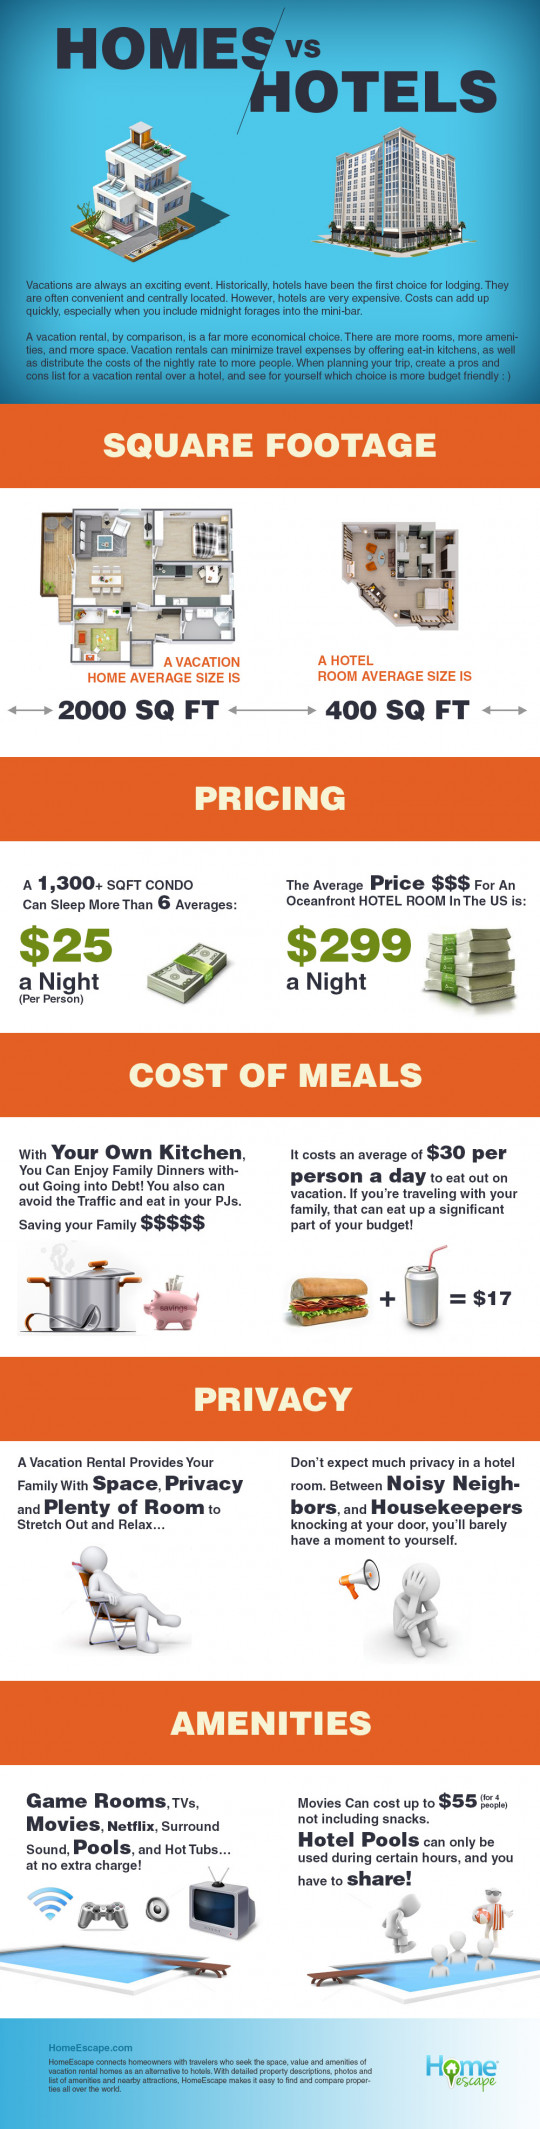 Homes vs Hotels Infographic